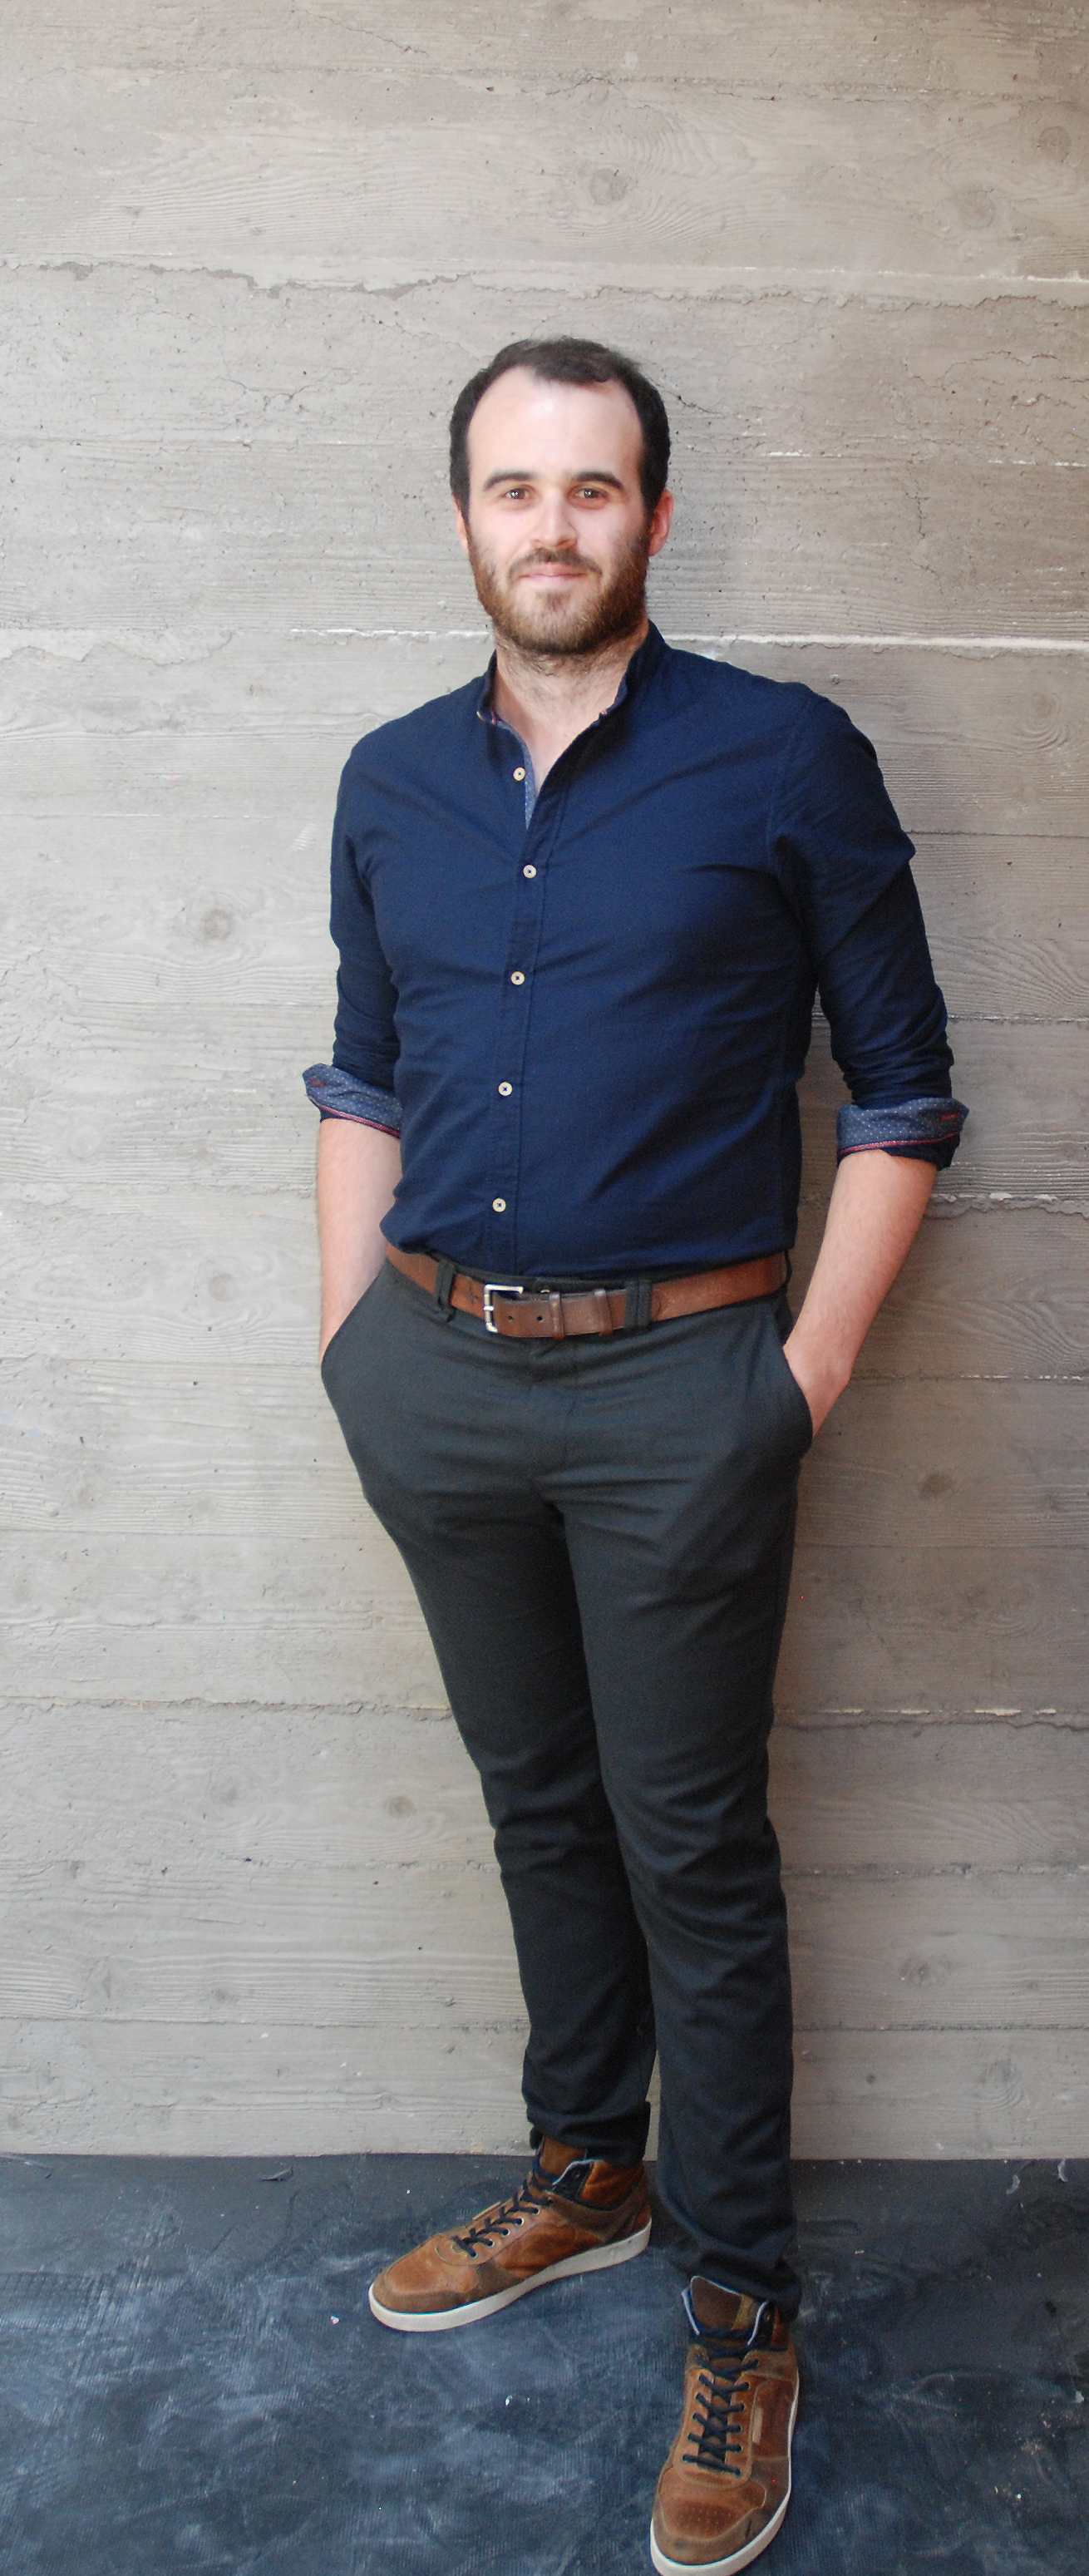 Joe Silver - BSc (Hons) Architectural Technology and Design ACIATJoe joined Stonewood Design after completing his degree at the University of the West of England.He previously worked at Heriz-Payne Architects, Glastonbury over a period of two years and also gained valuable experience at Glenn Howells Architects, London, in between study years at University.Joe brings a great technical experience to the practice which ensures that we deliver beautiful and exquisite detailing to our buildings.Joe is currently delivering a new build and refurbishment house project on a significant site in Bath.